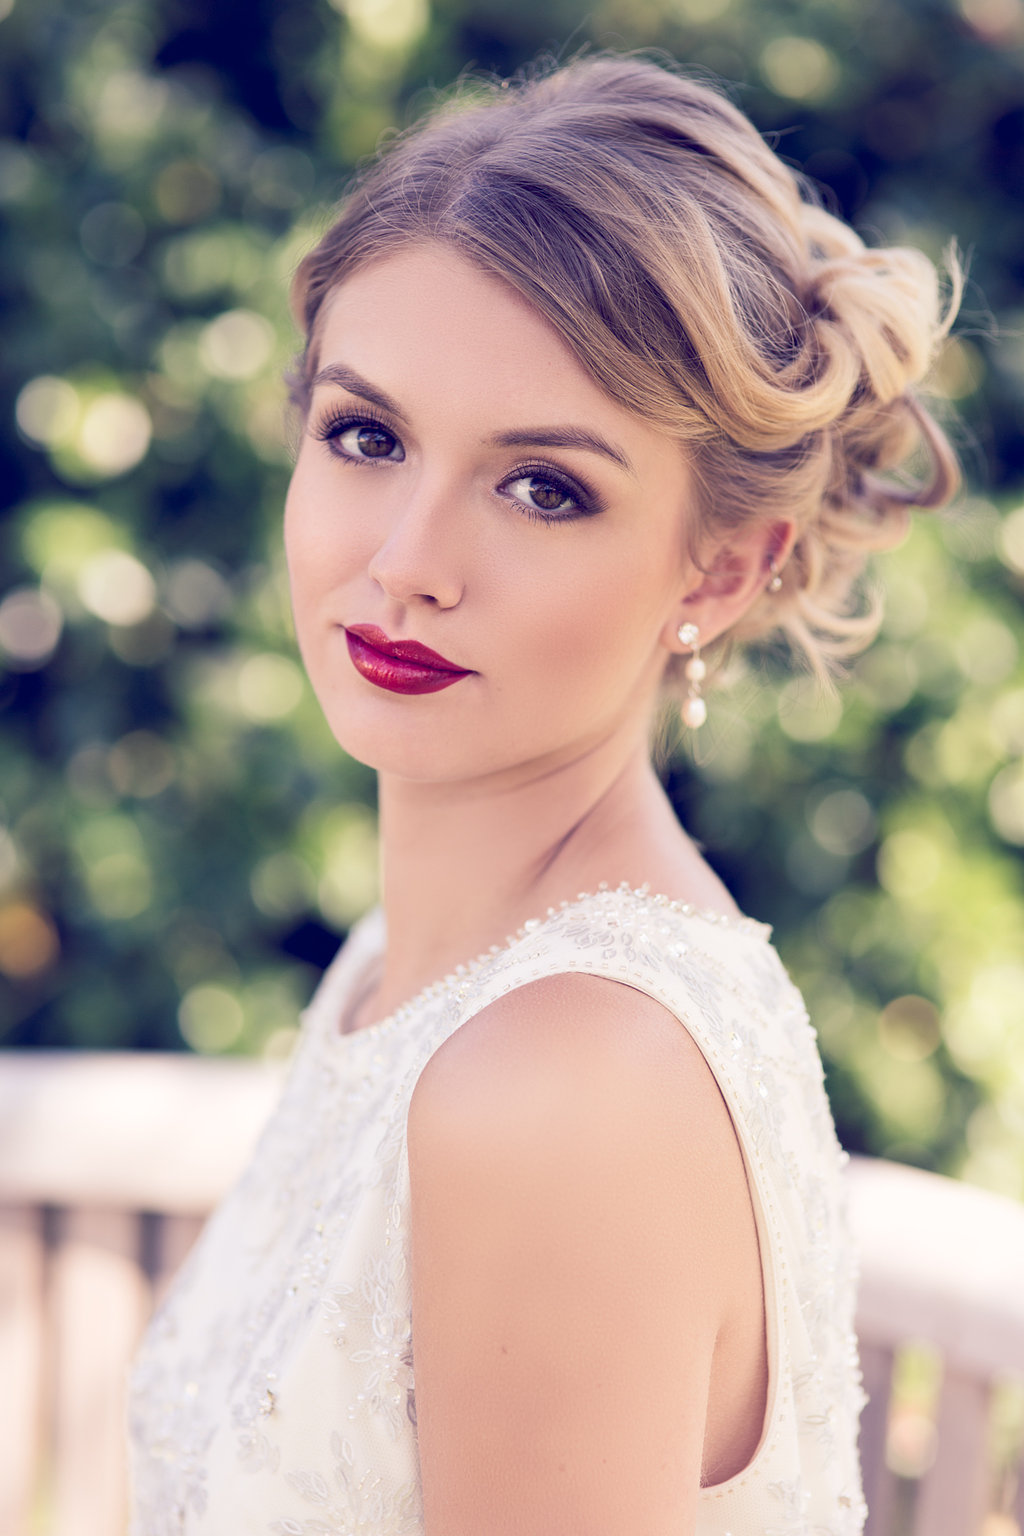 Capturing the Bridal Look - 4 different ways to style your ...